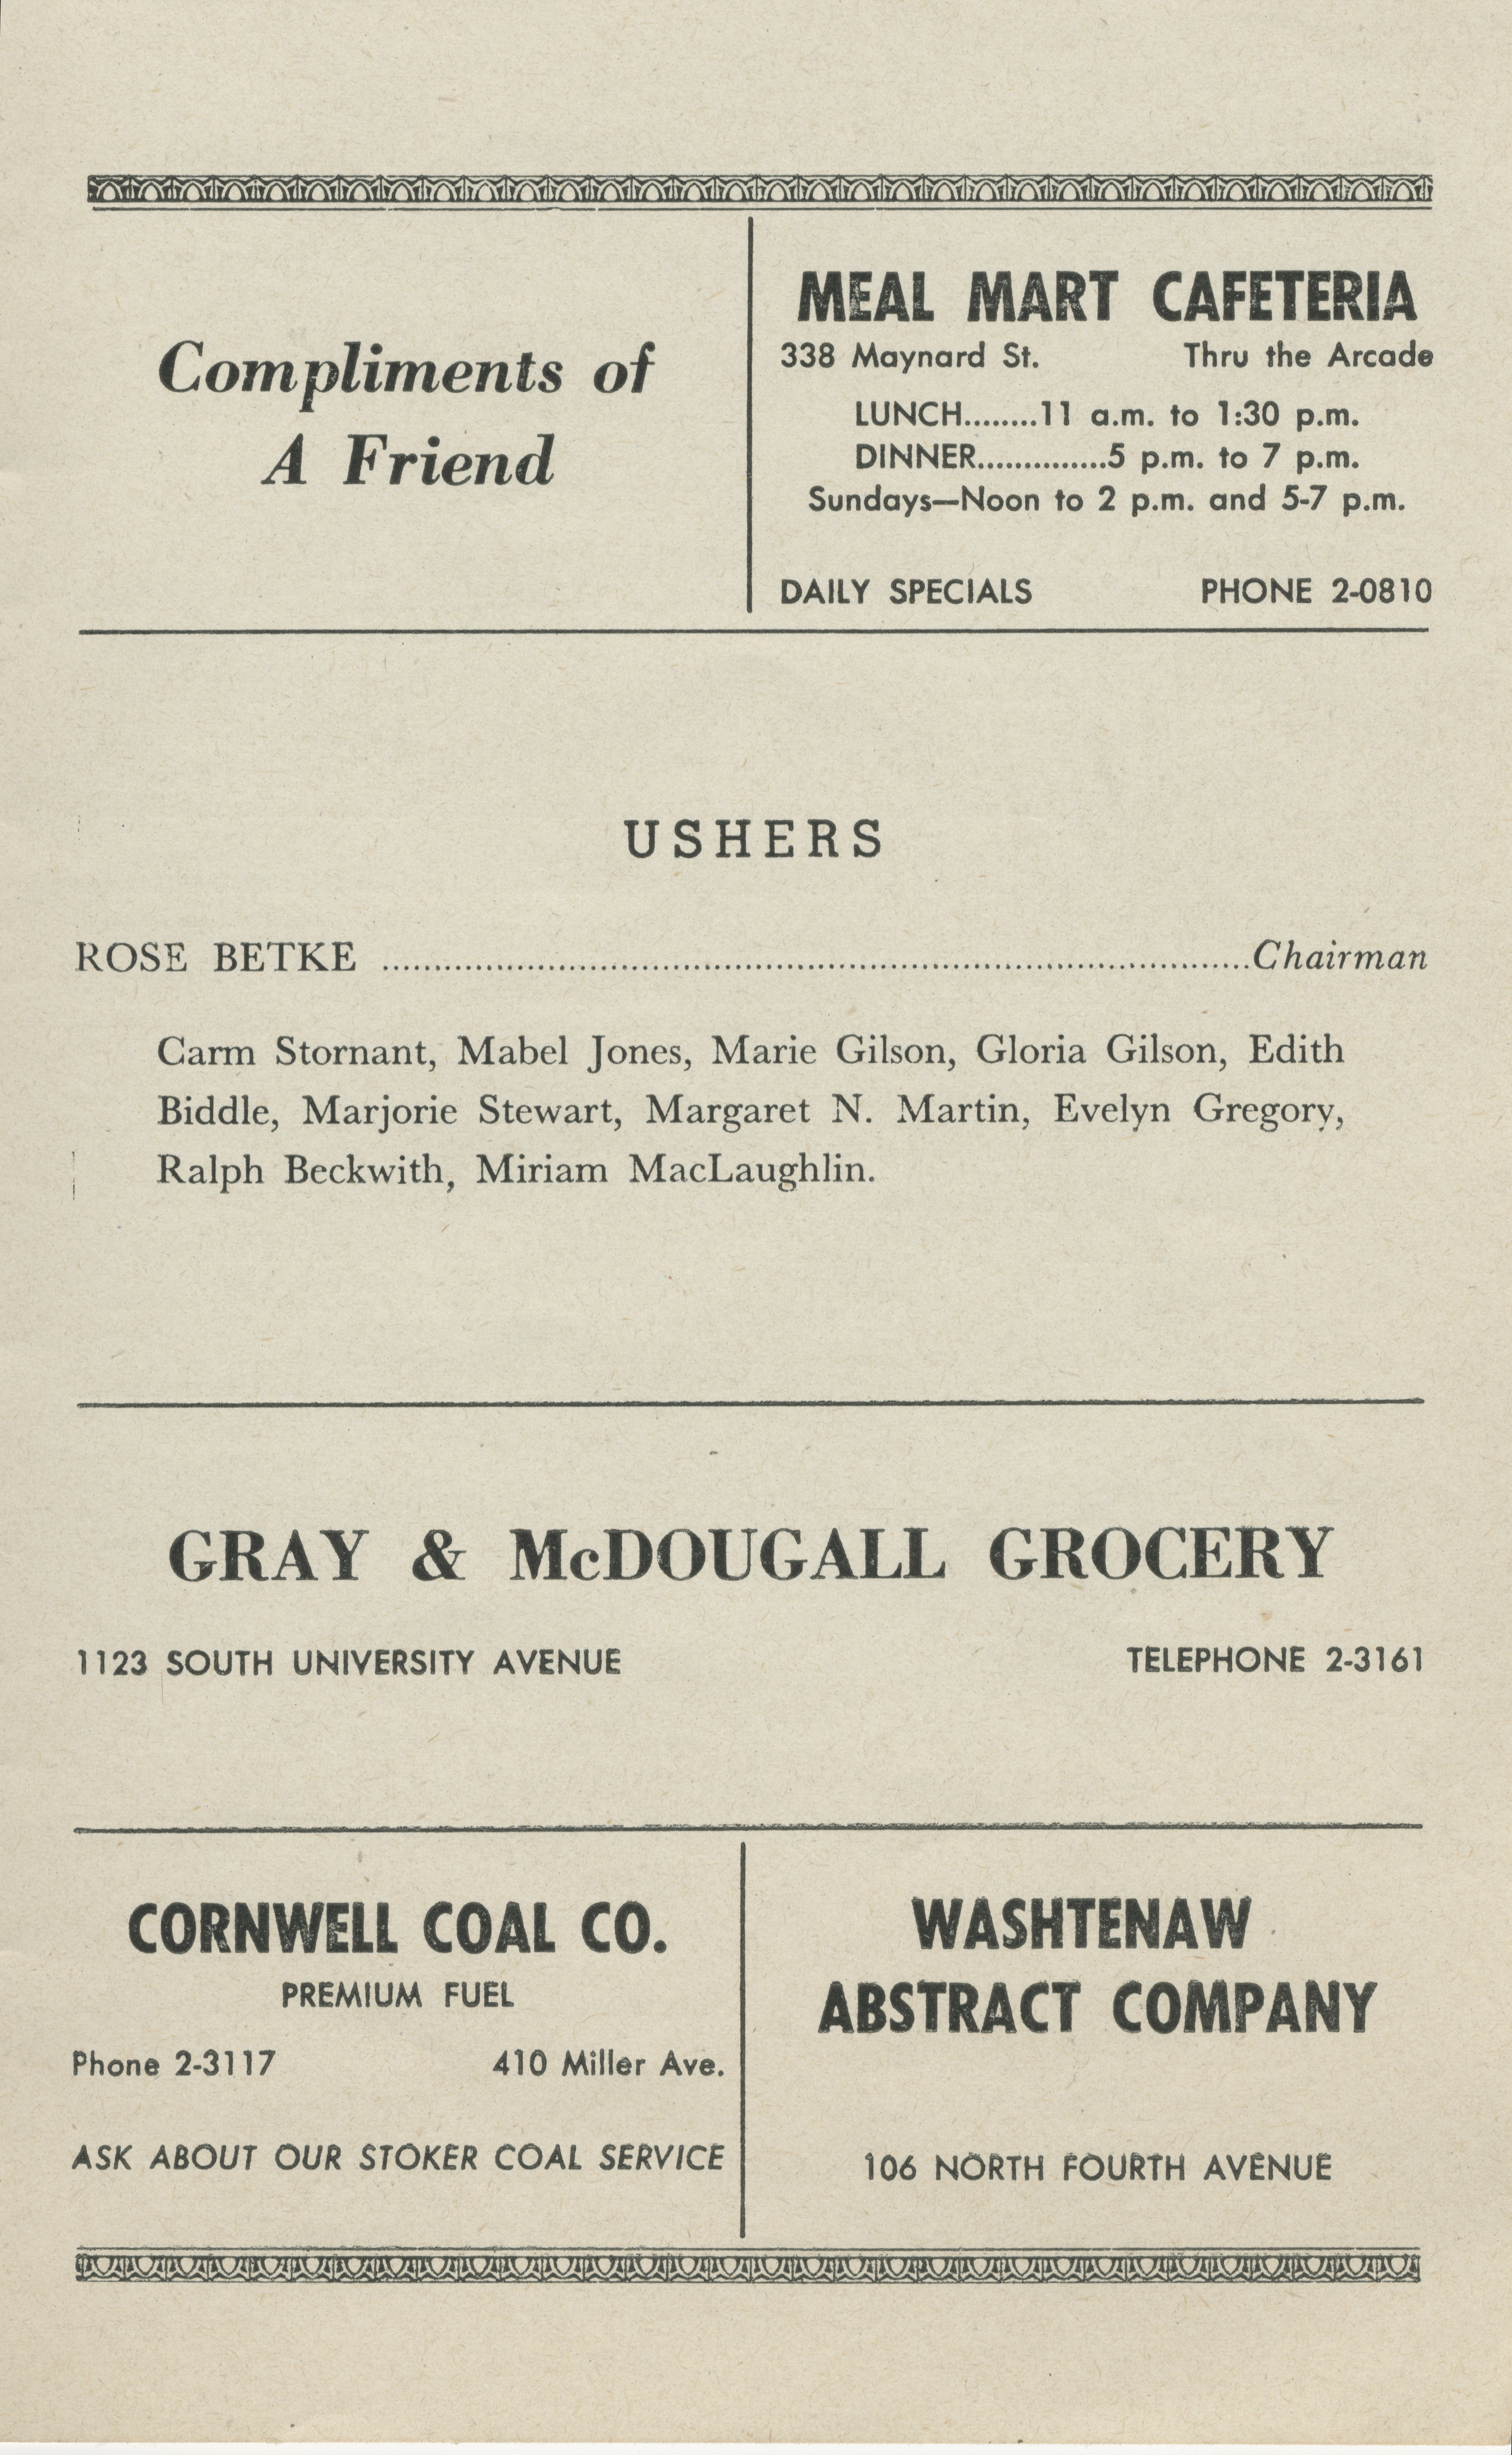 Ann Arbor Civic Theatre Program: Male Animal, April 11, 1950 image